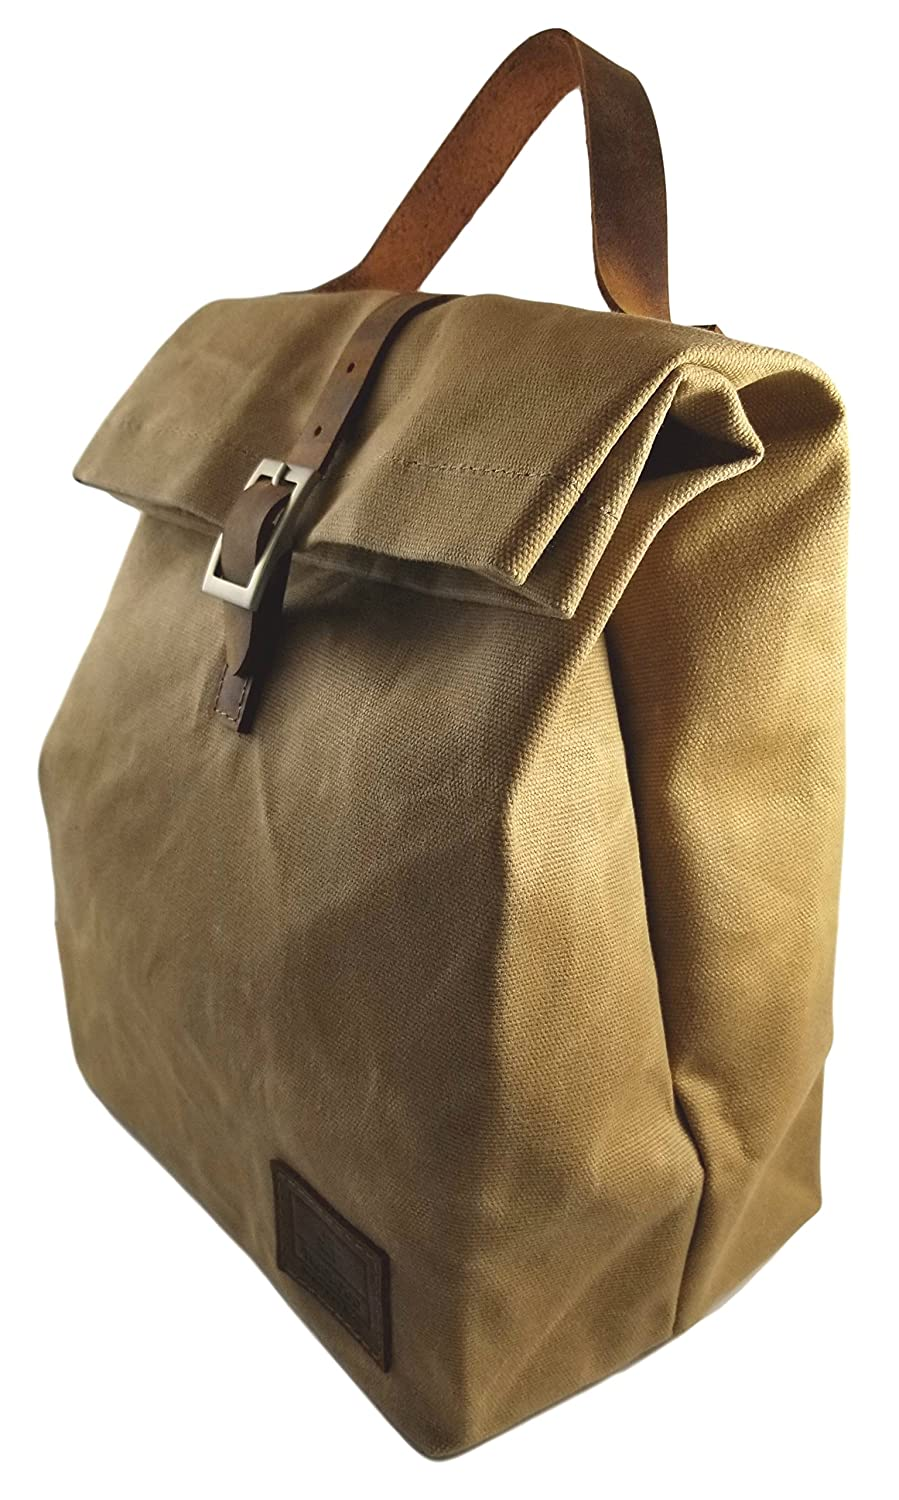 Reusable Thermal Insulated Lunch Bag - Waxed Canvas - Waterproof